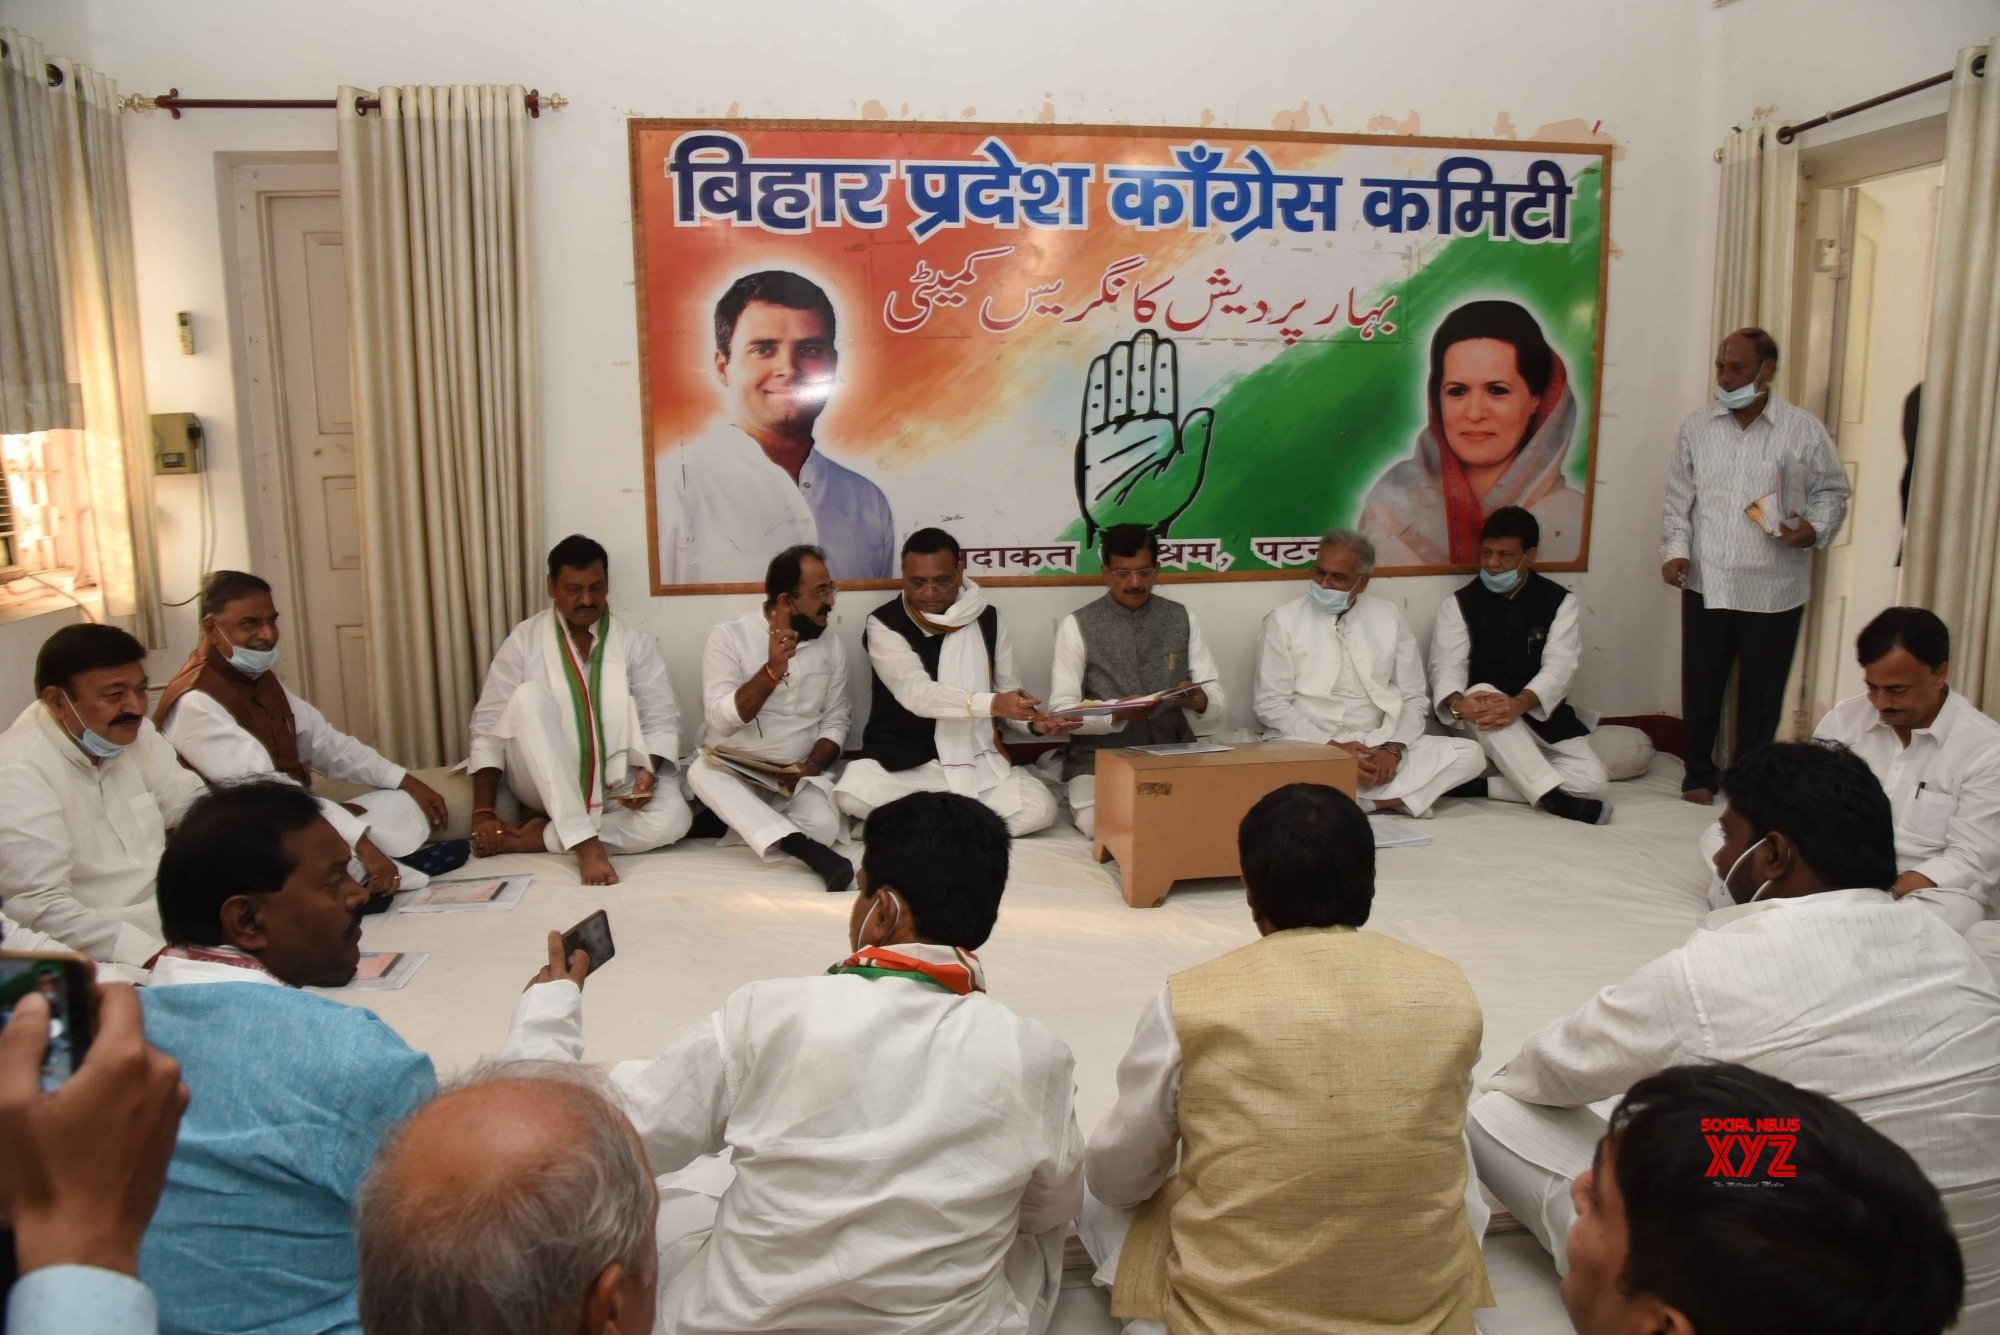 Patna: Bhupesh Baghel, Madan Mohan Jha and Kaukab Qadri chair meeting with newly elected Bihar MLAs #Gallery